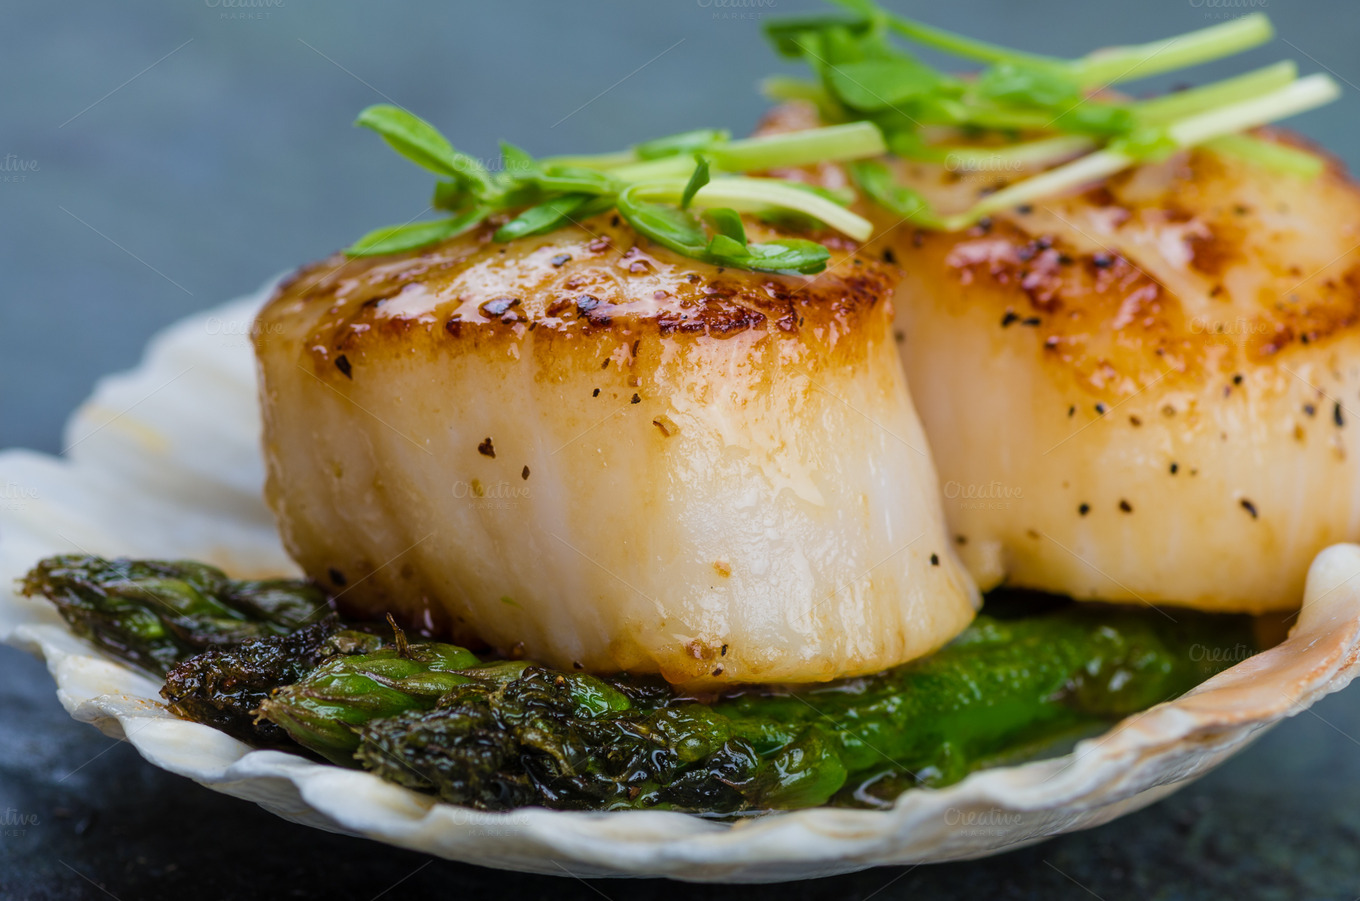 Sauteed scallops with asparagus ~ Nature Photos on Creative Market